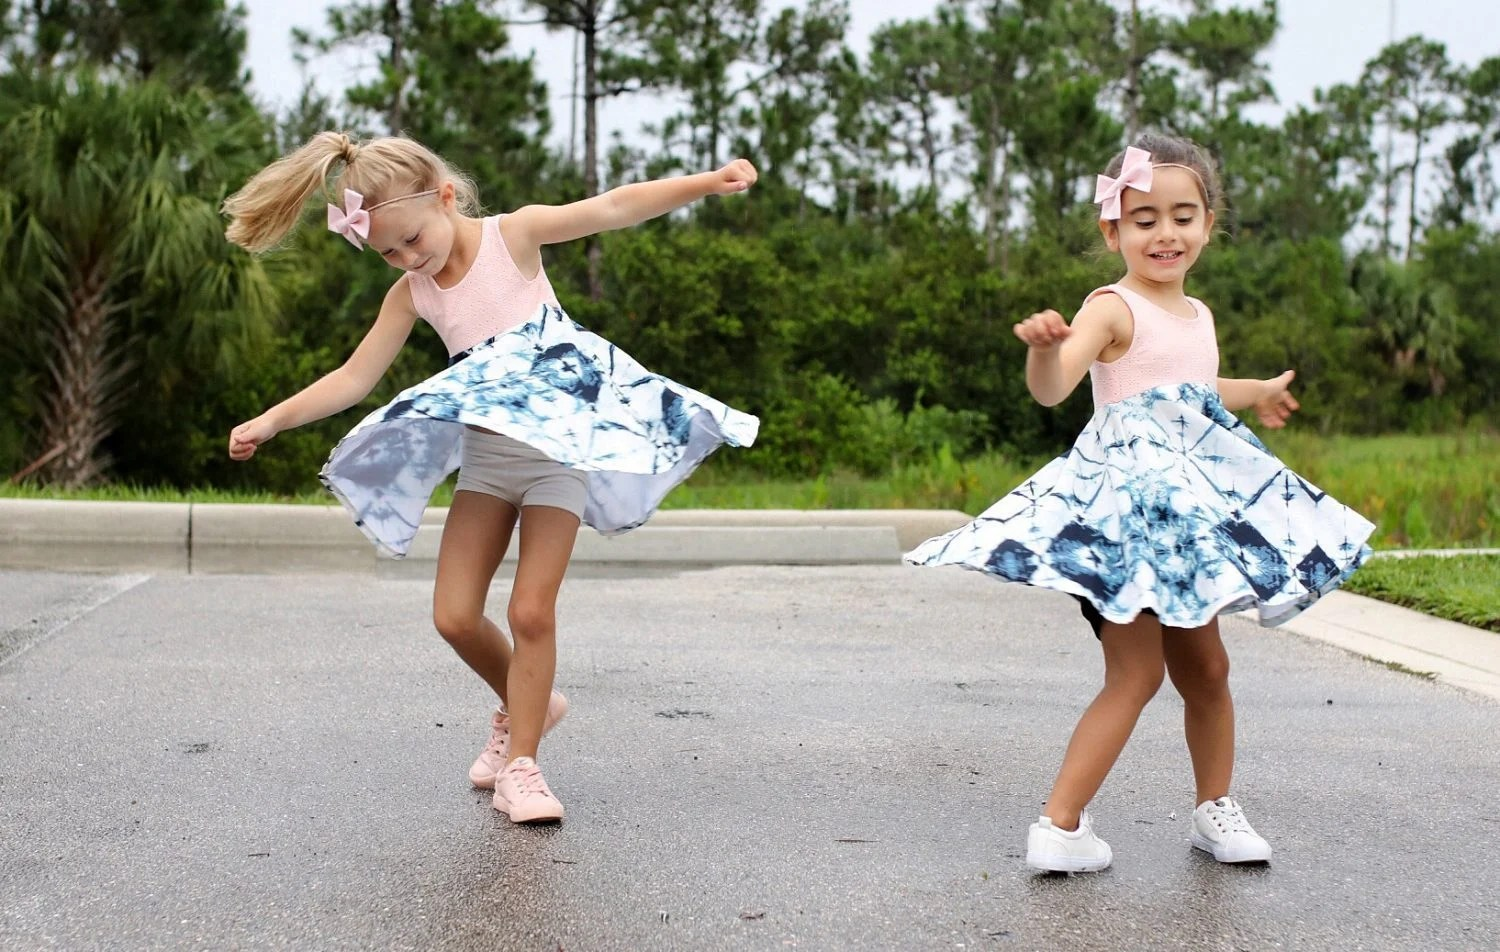 Bows: Merci Bow Coup, Dresses: The Heartistry Shoppe, Sneakers: FabKids